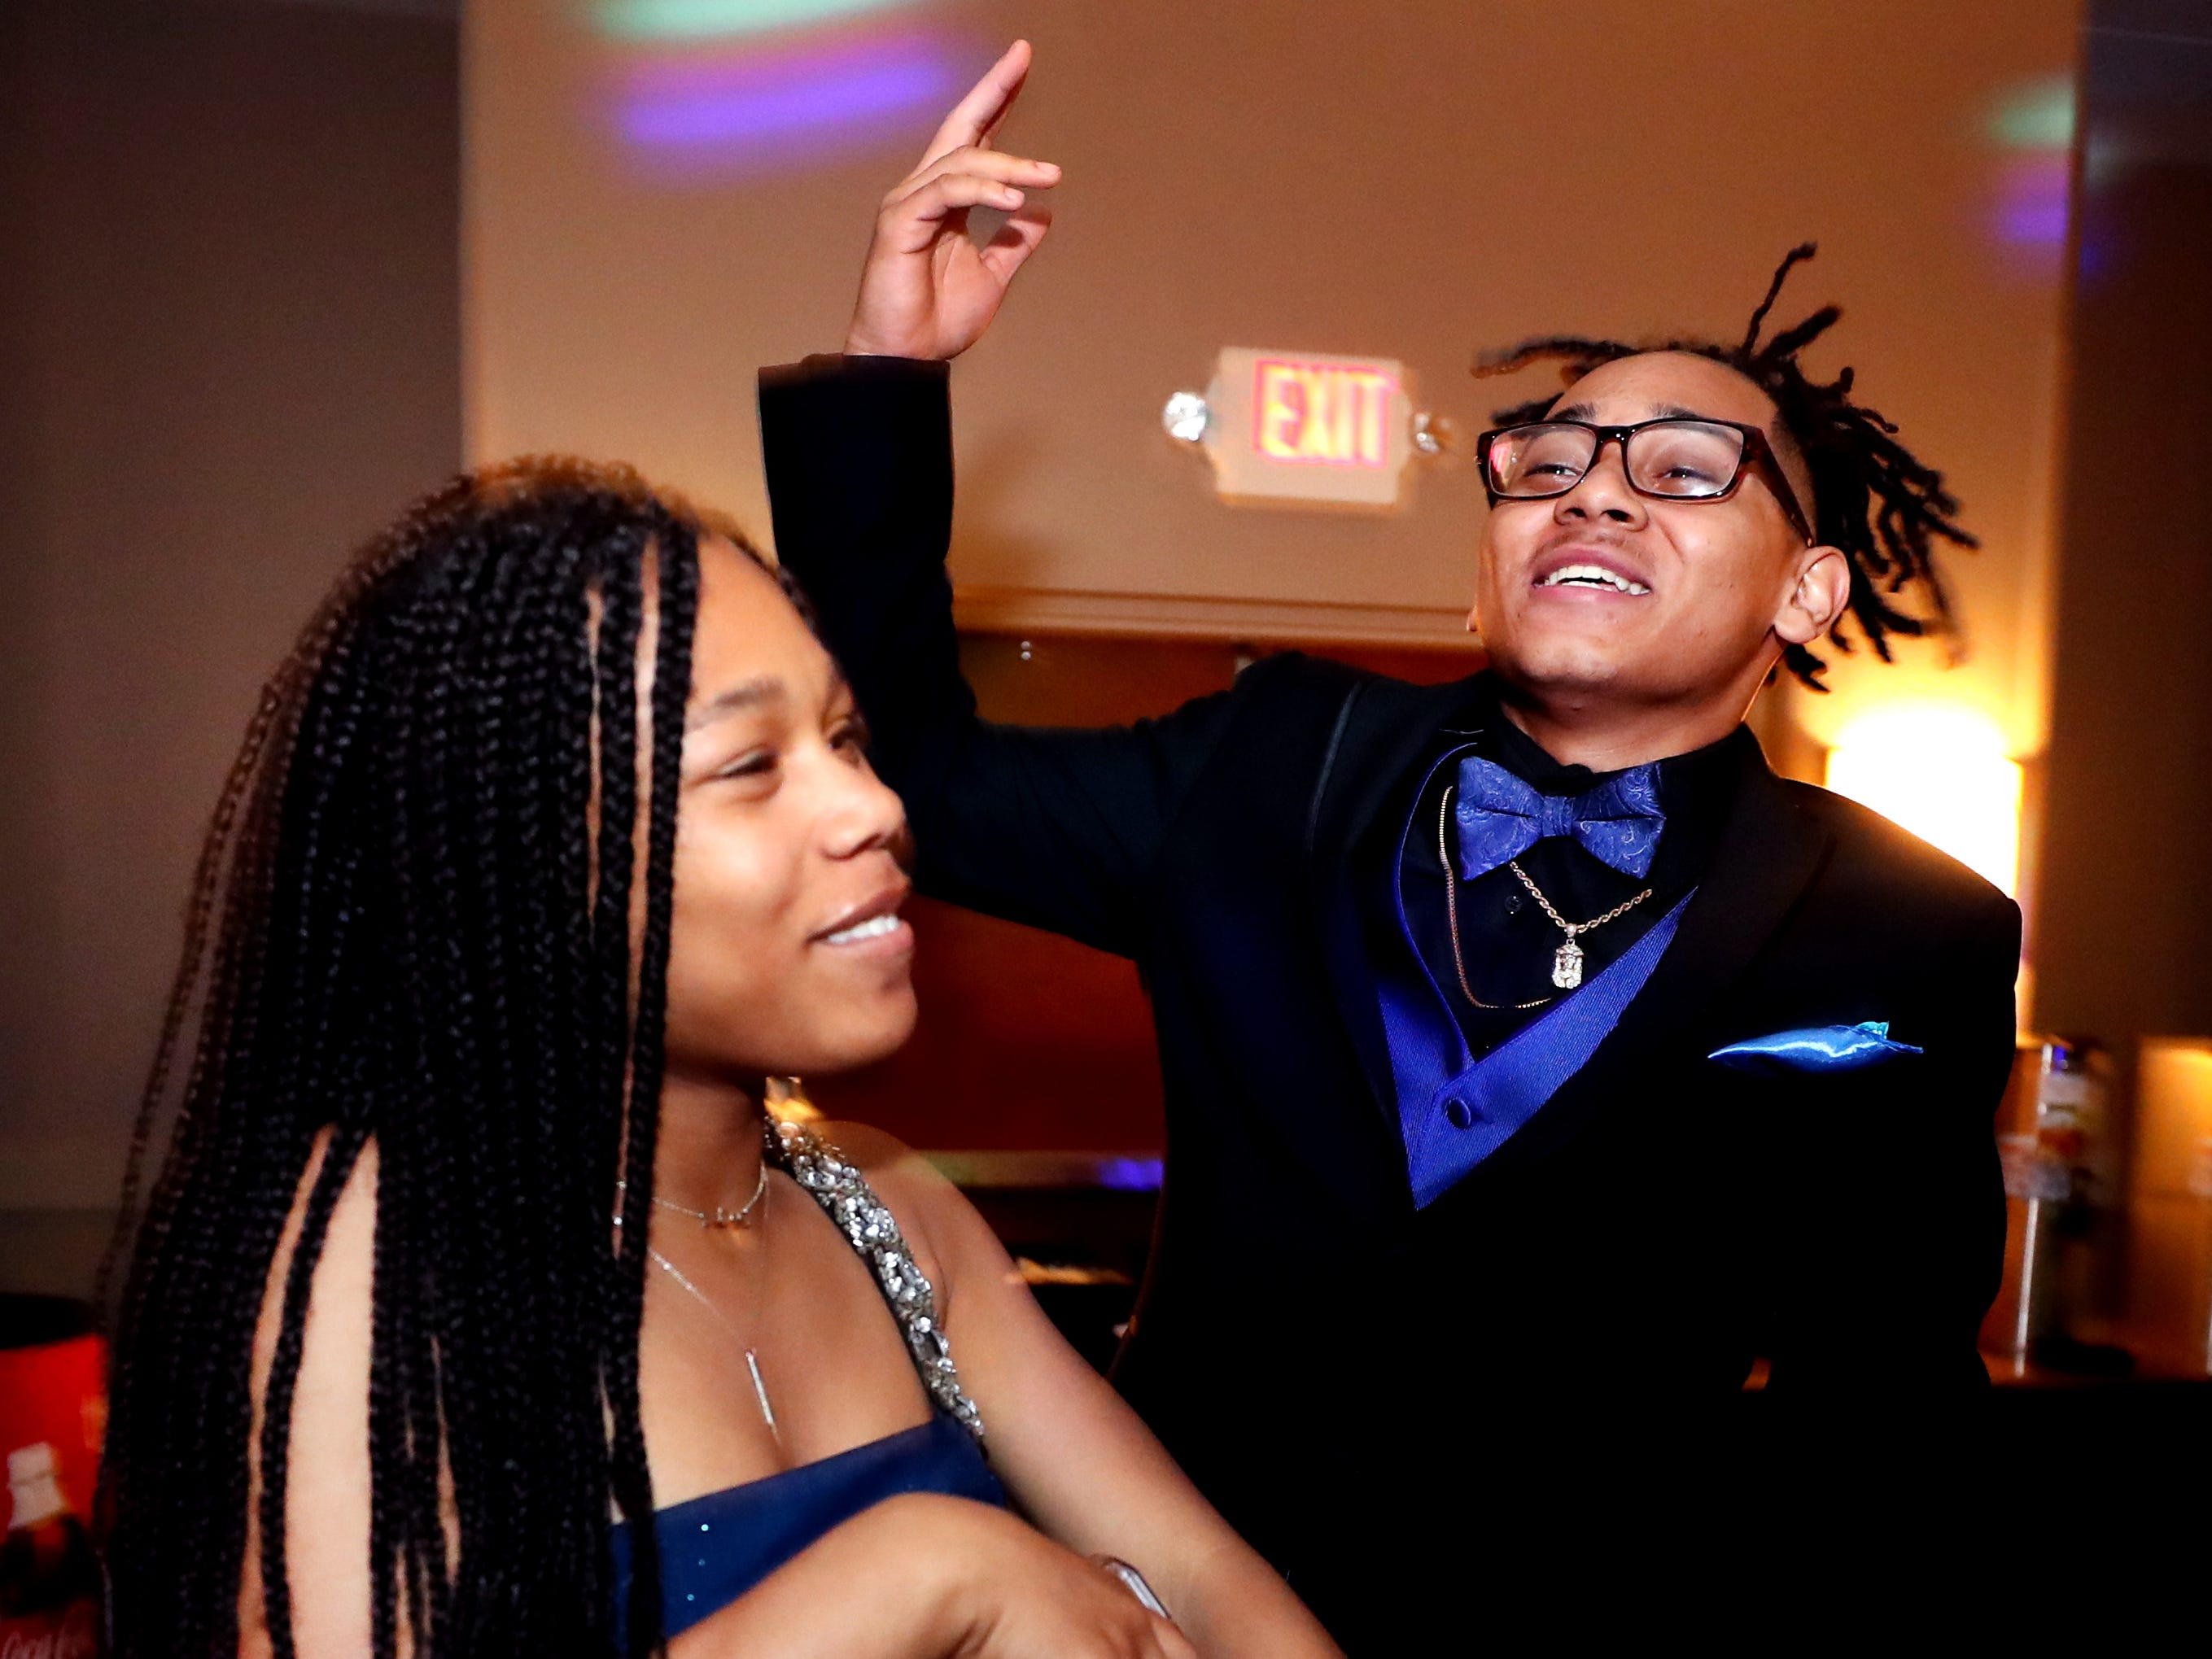 Yaqueenisha Murray, left and Jamarion Buchanan, right dancing at Holloway's prom at the DoubleTree on Thursday April 18, 2019.